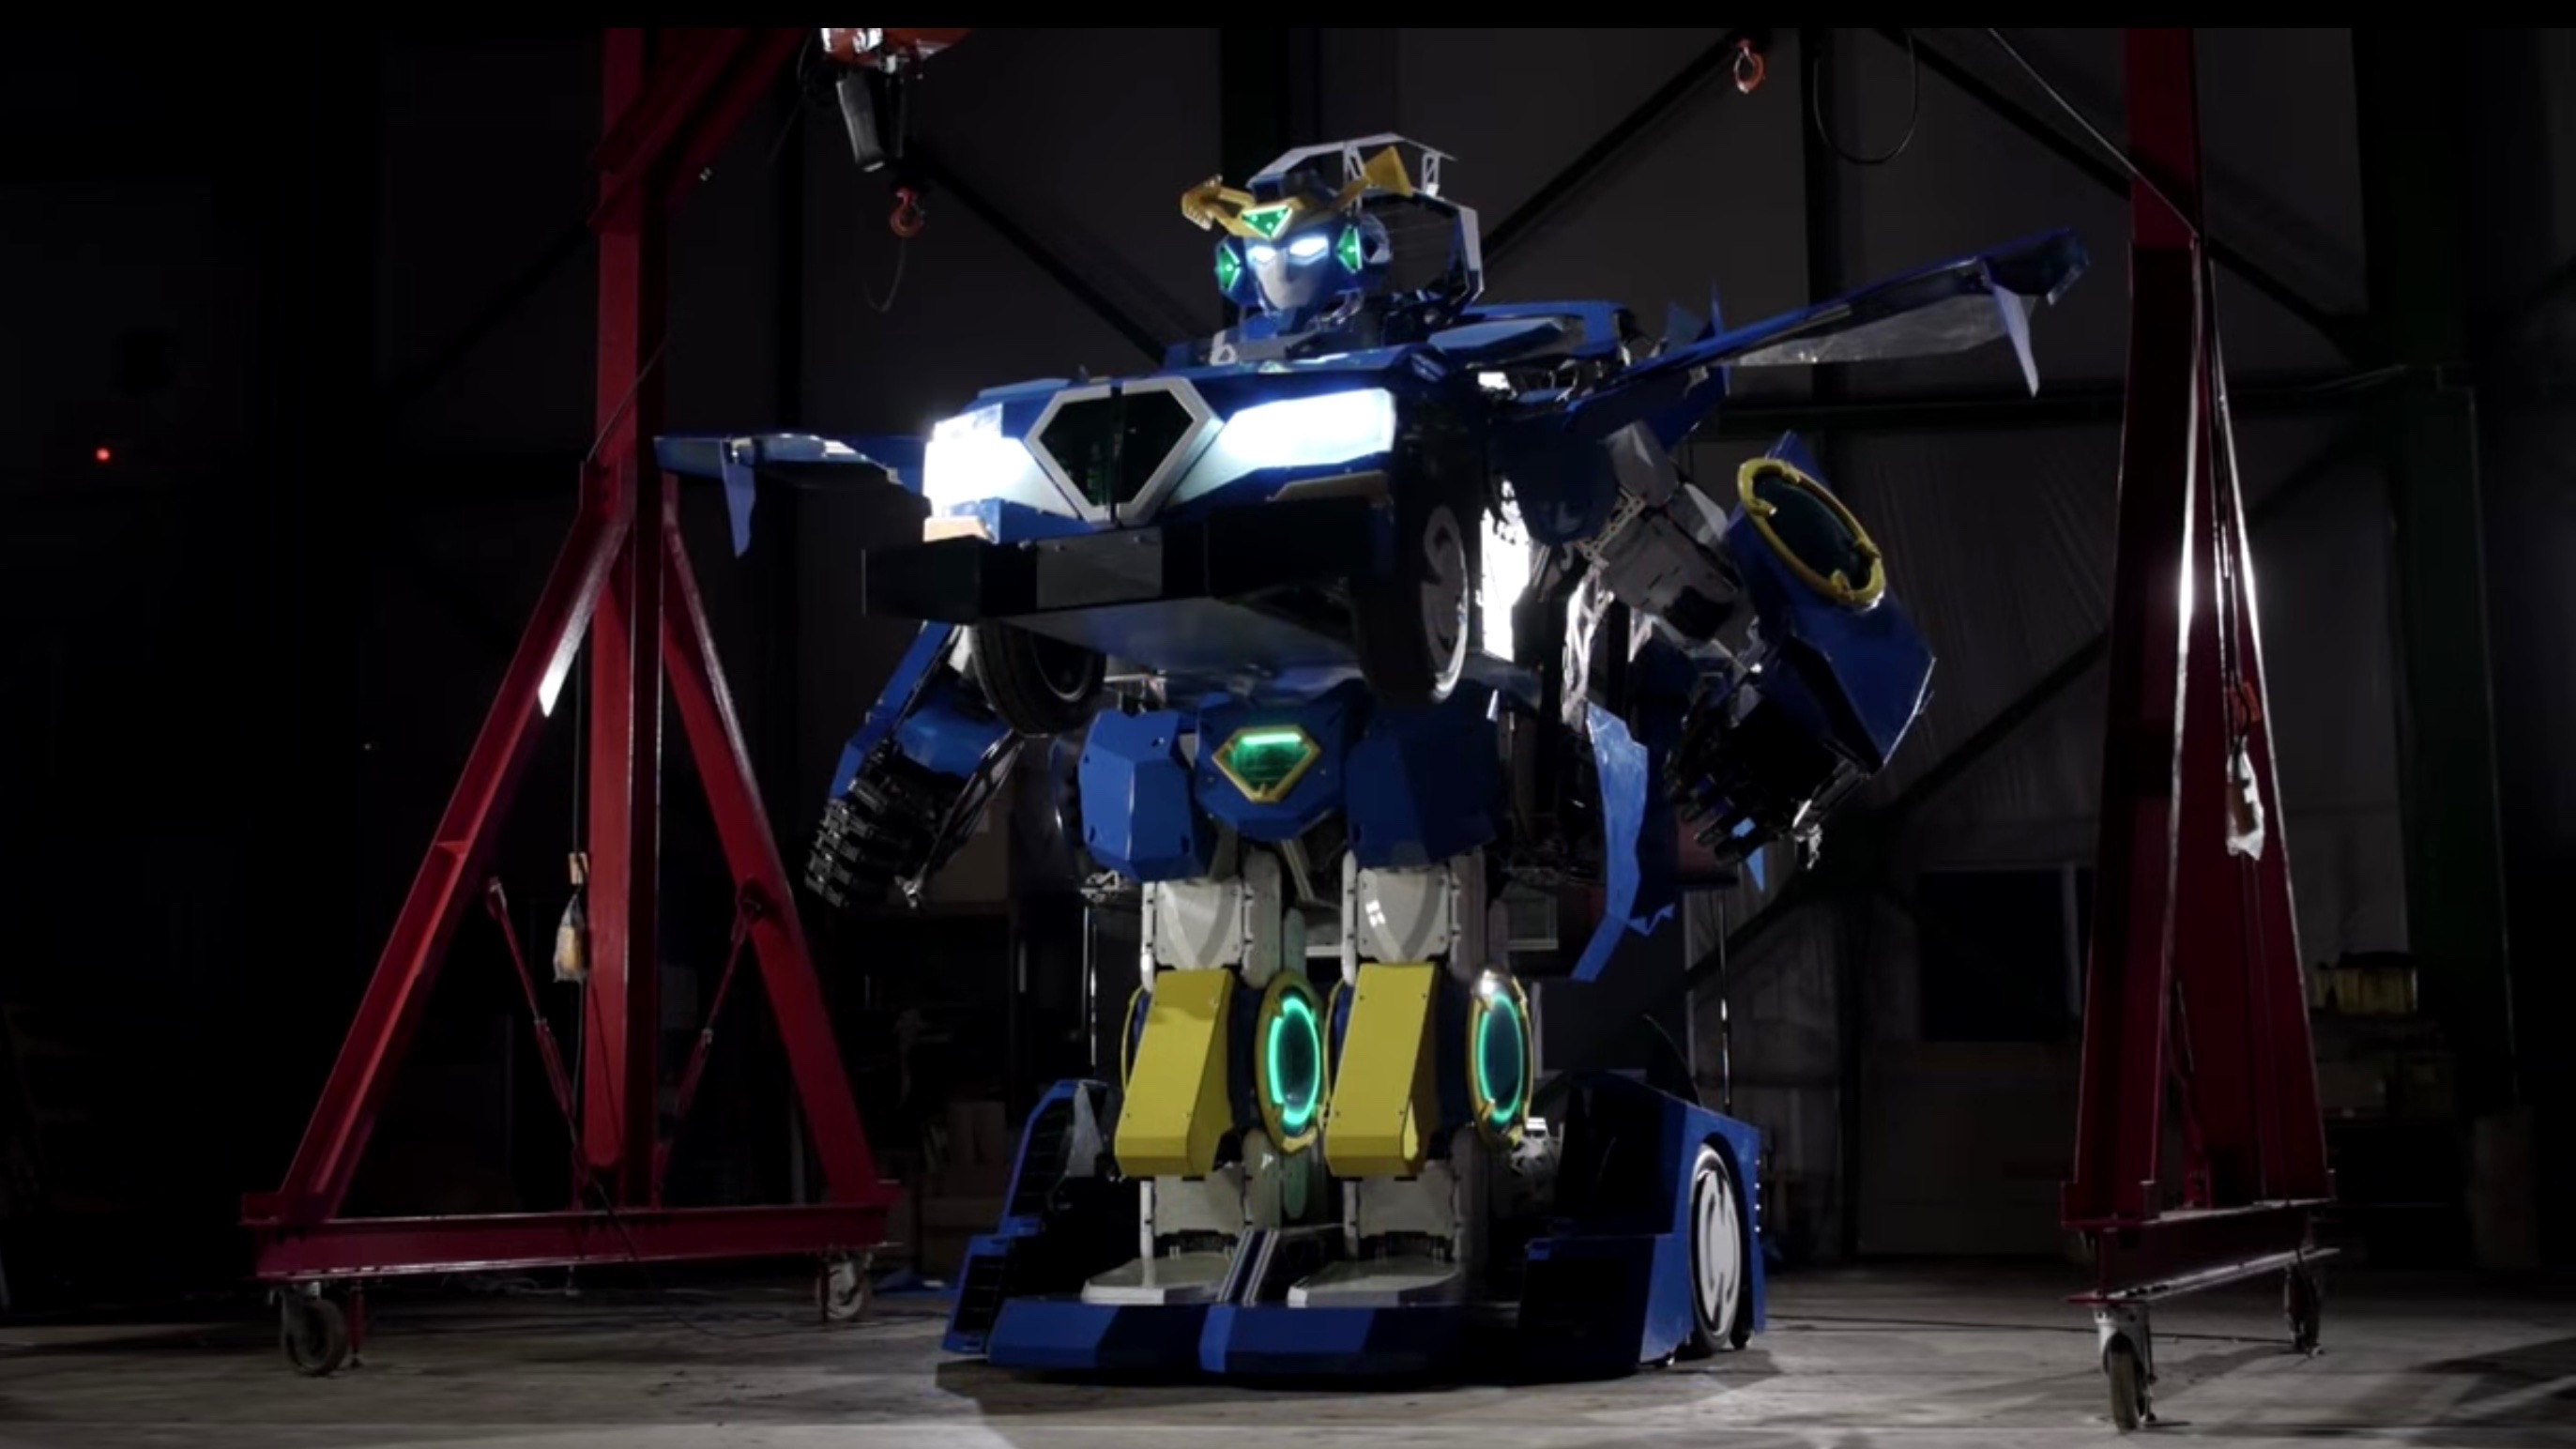 Real-life Transformers could be coming to an amusement park near you